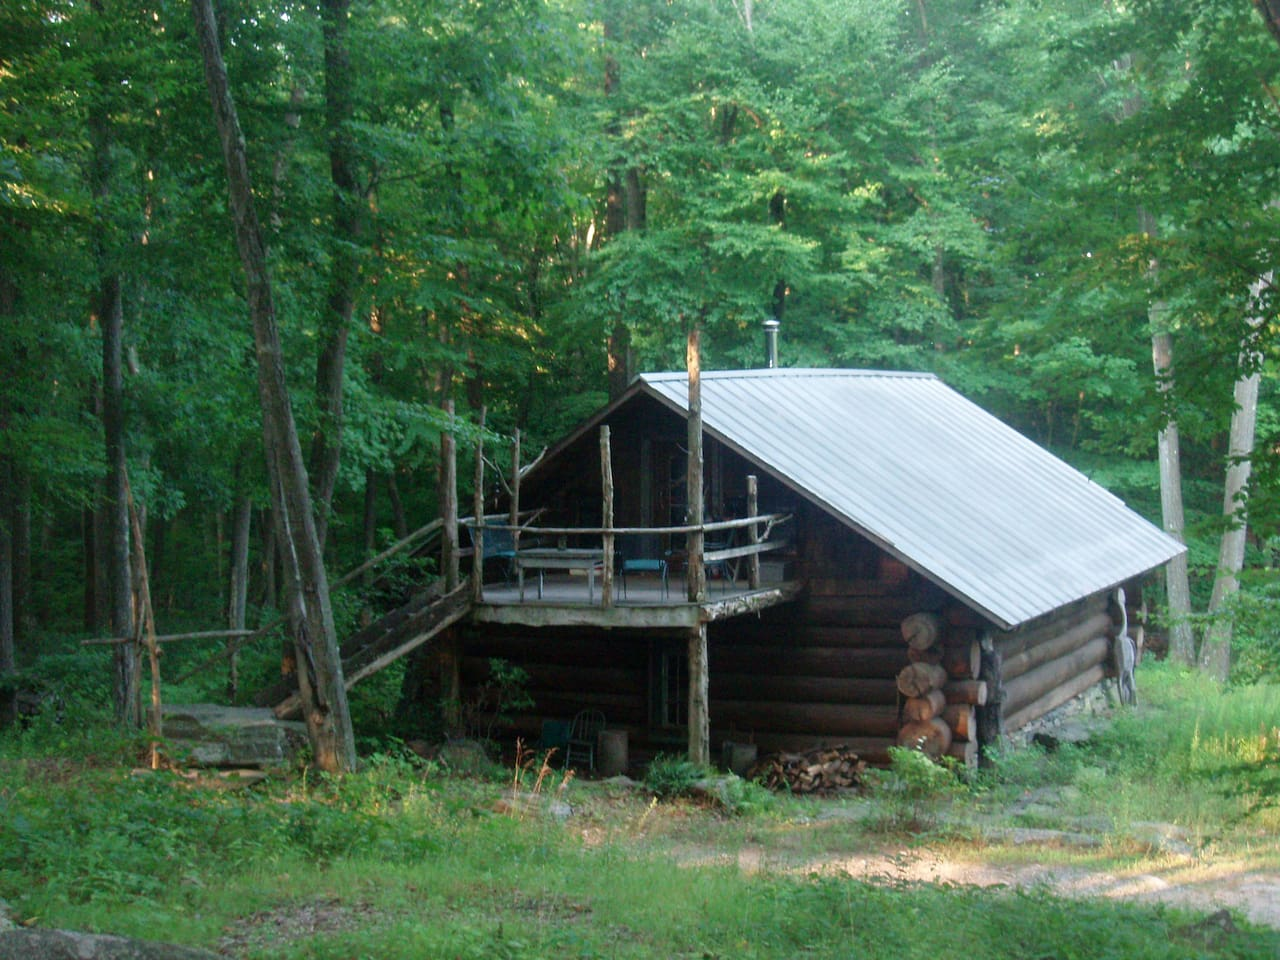 Hand Hewn Tulip Tree Log Cabin with Deck overlooking Pond.